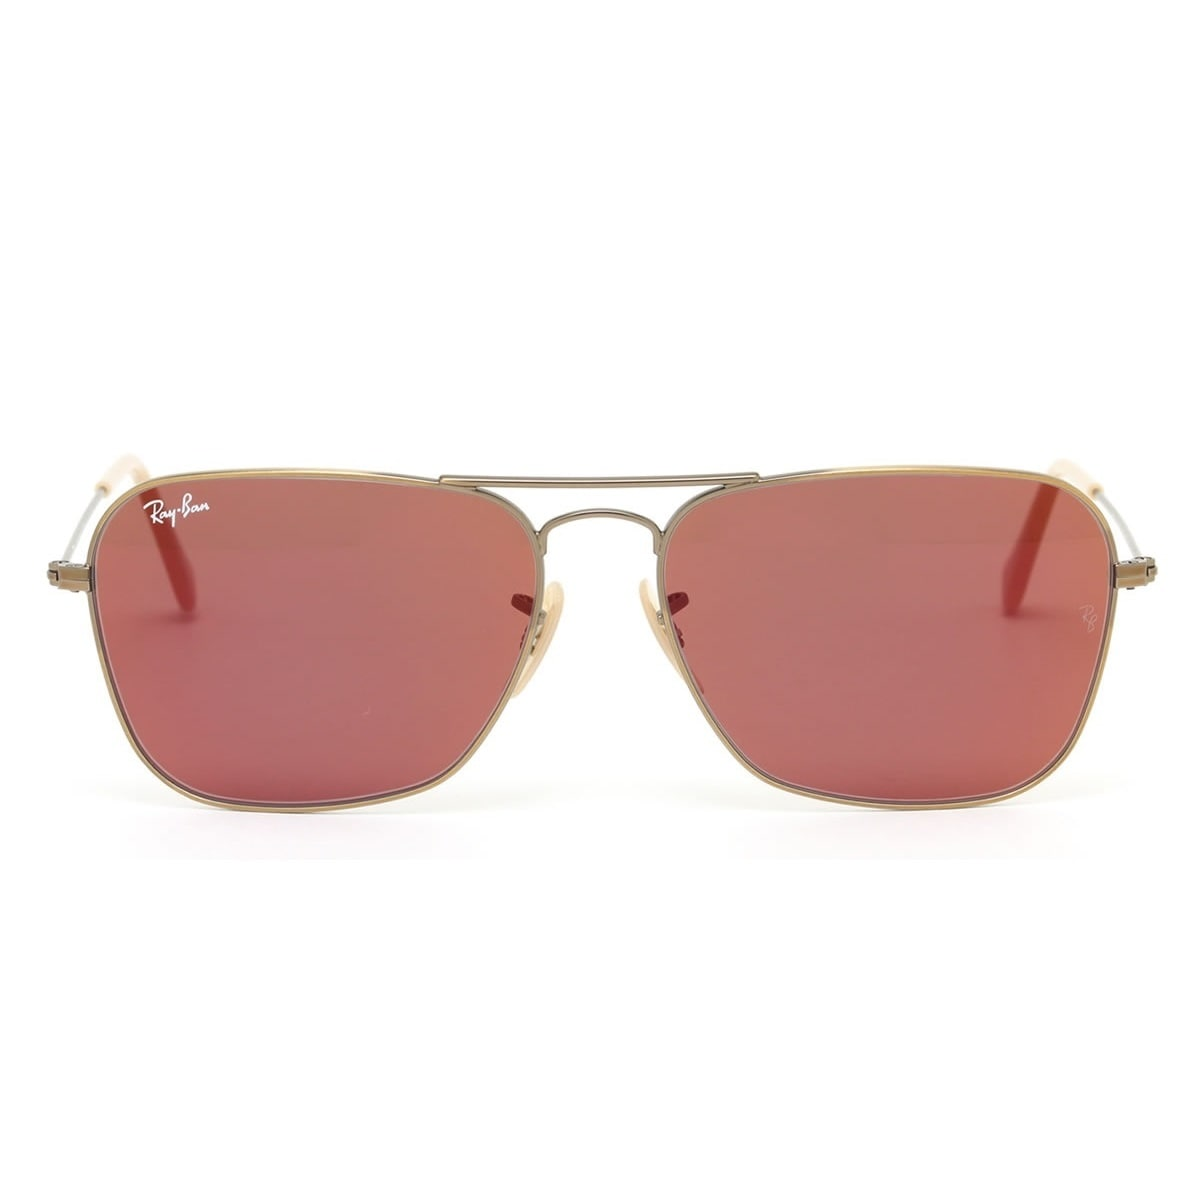 9aa2194aab Shop Ray-Ban RB3136 167 2K Bronze Copper Frame Red Mirror 58mm Lens  Sunglasses - Free Shipping Today - Overstock - 14442282